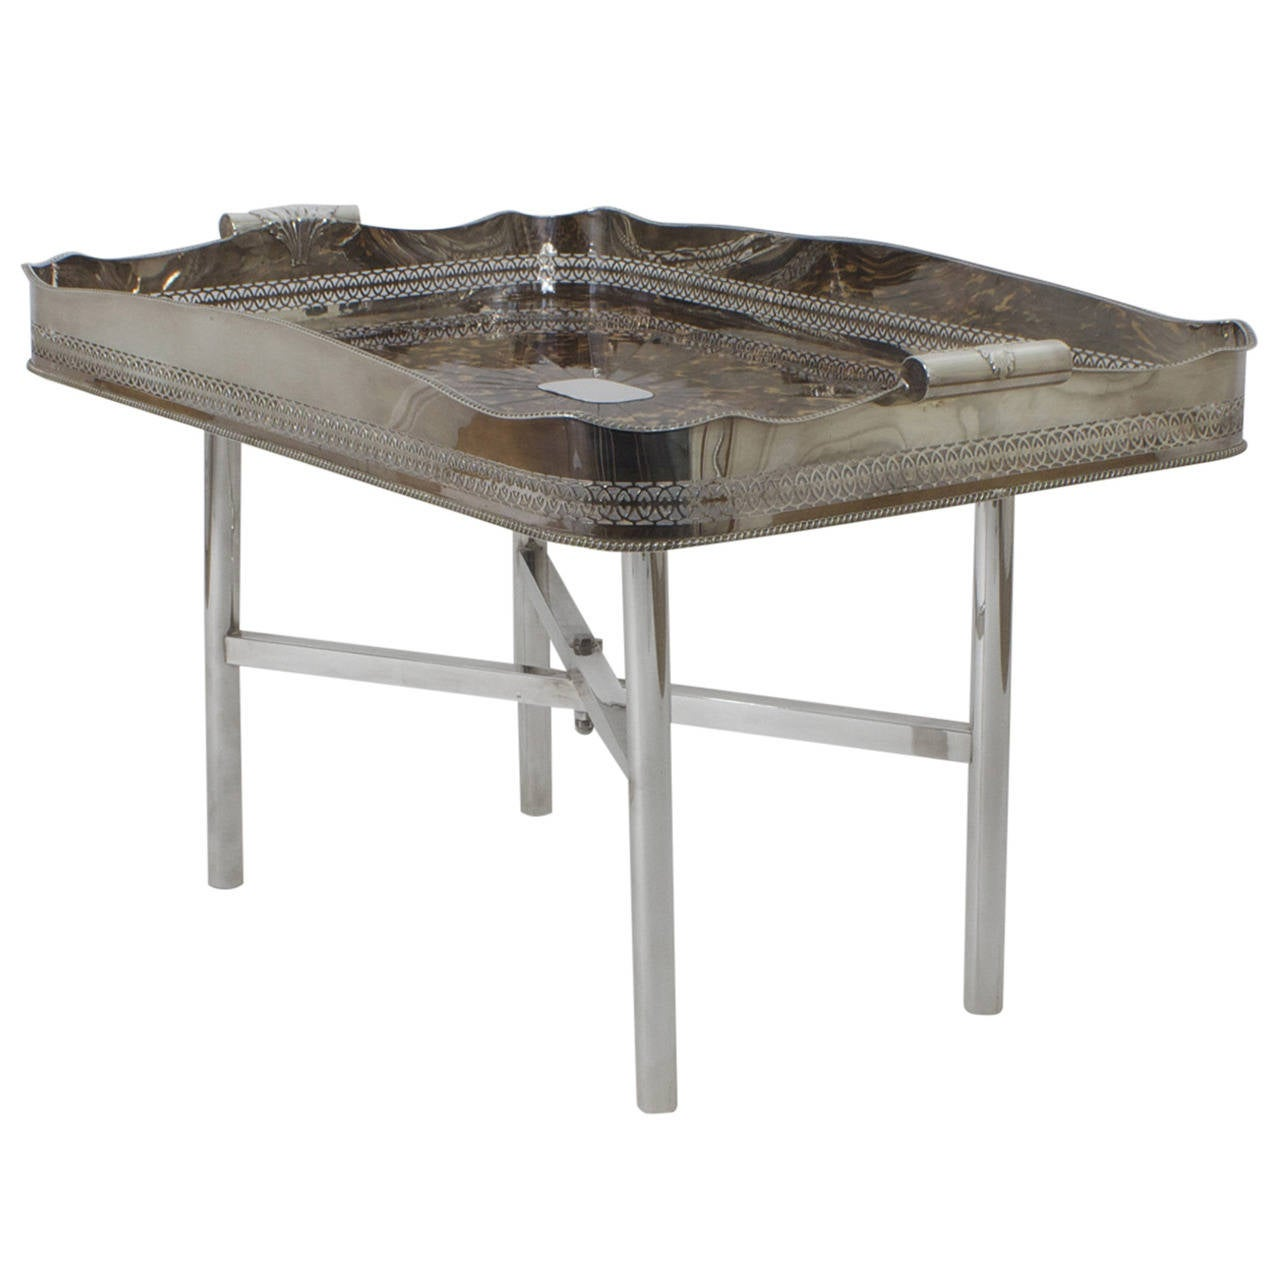 Faux Tortoiseshell and Silver Plated Tray Table For Sale